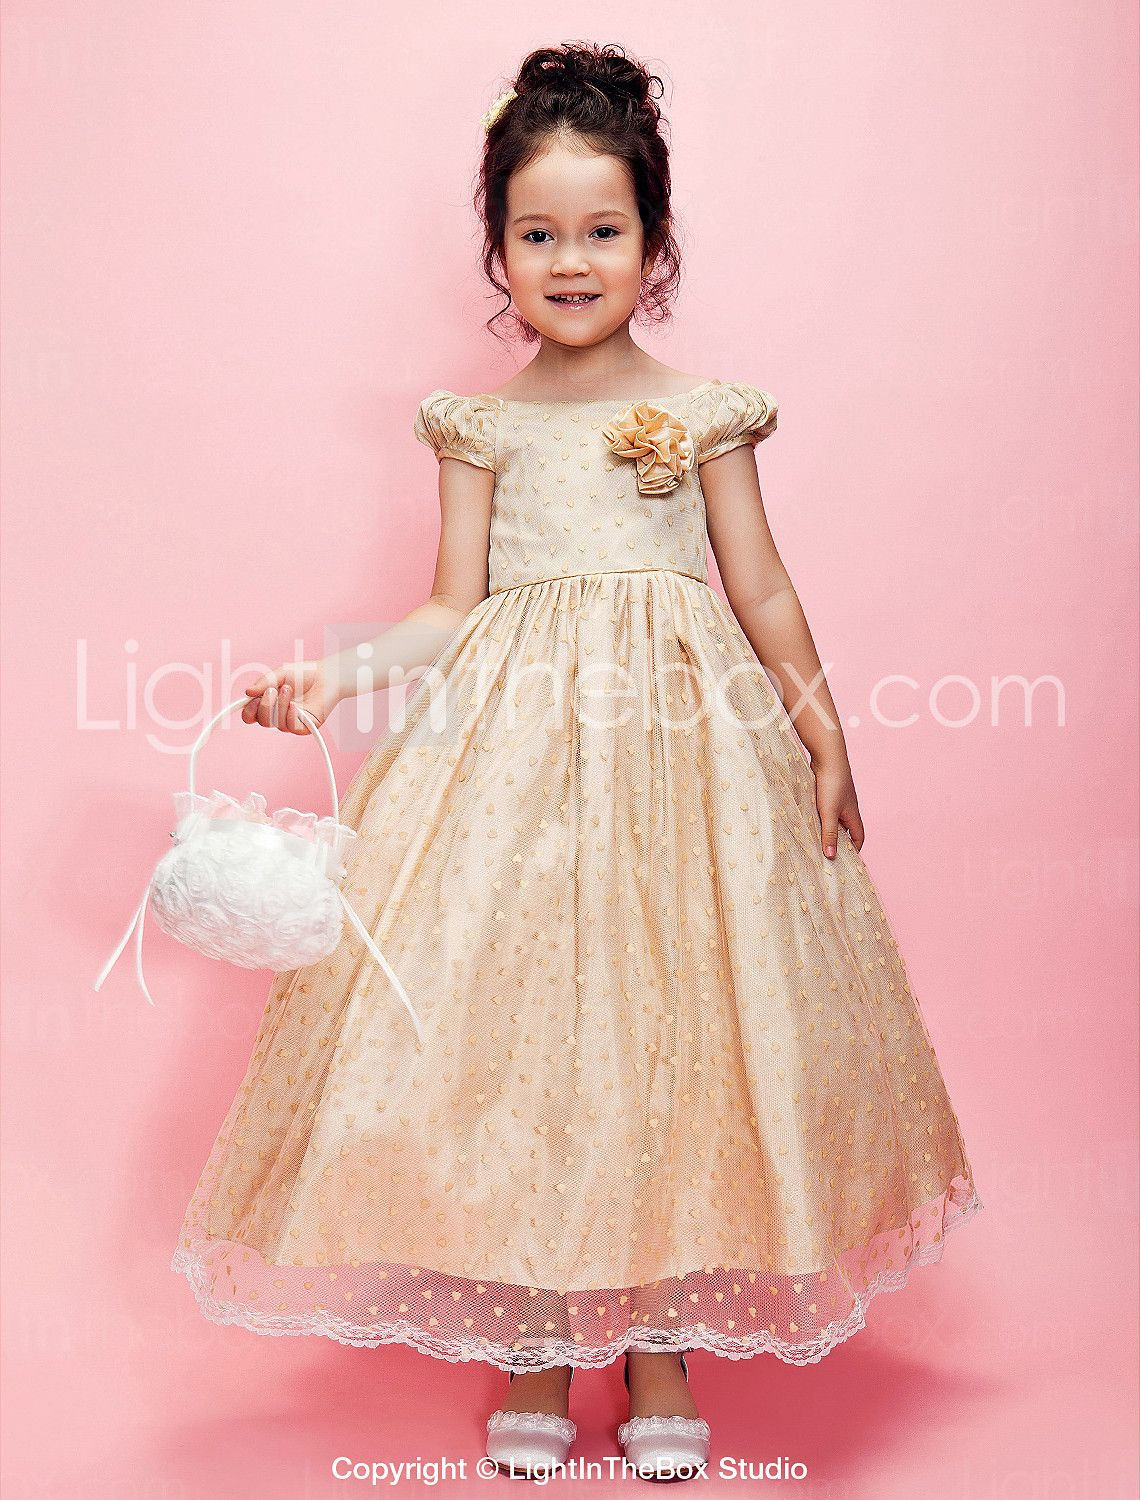 A-line Tulle And Taffeta Tea-length Flower Girl Dress With Bateau ...